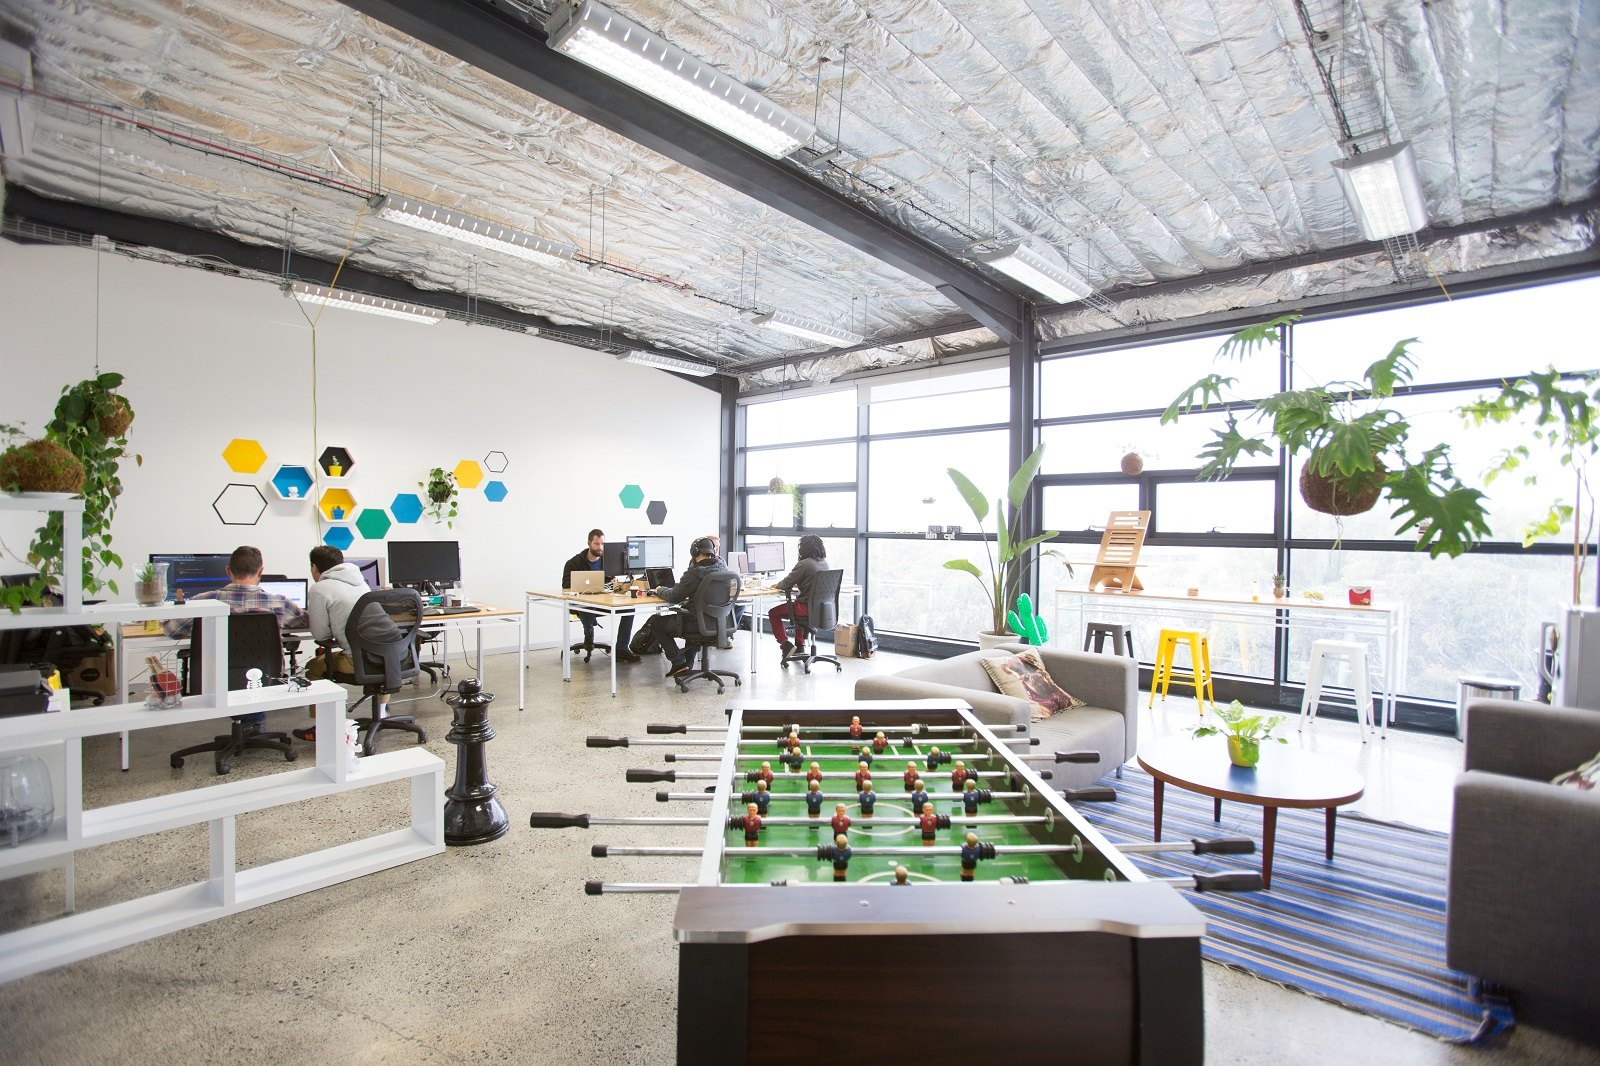 The Bureaux   Woodstock Creative places for creative people